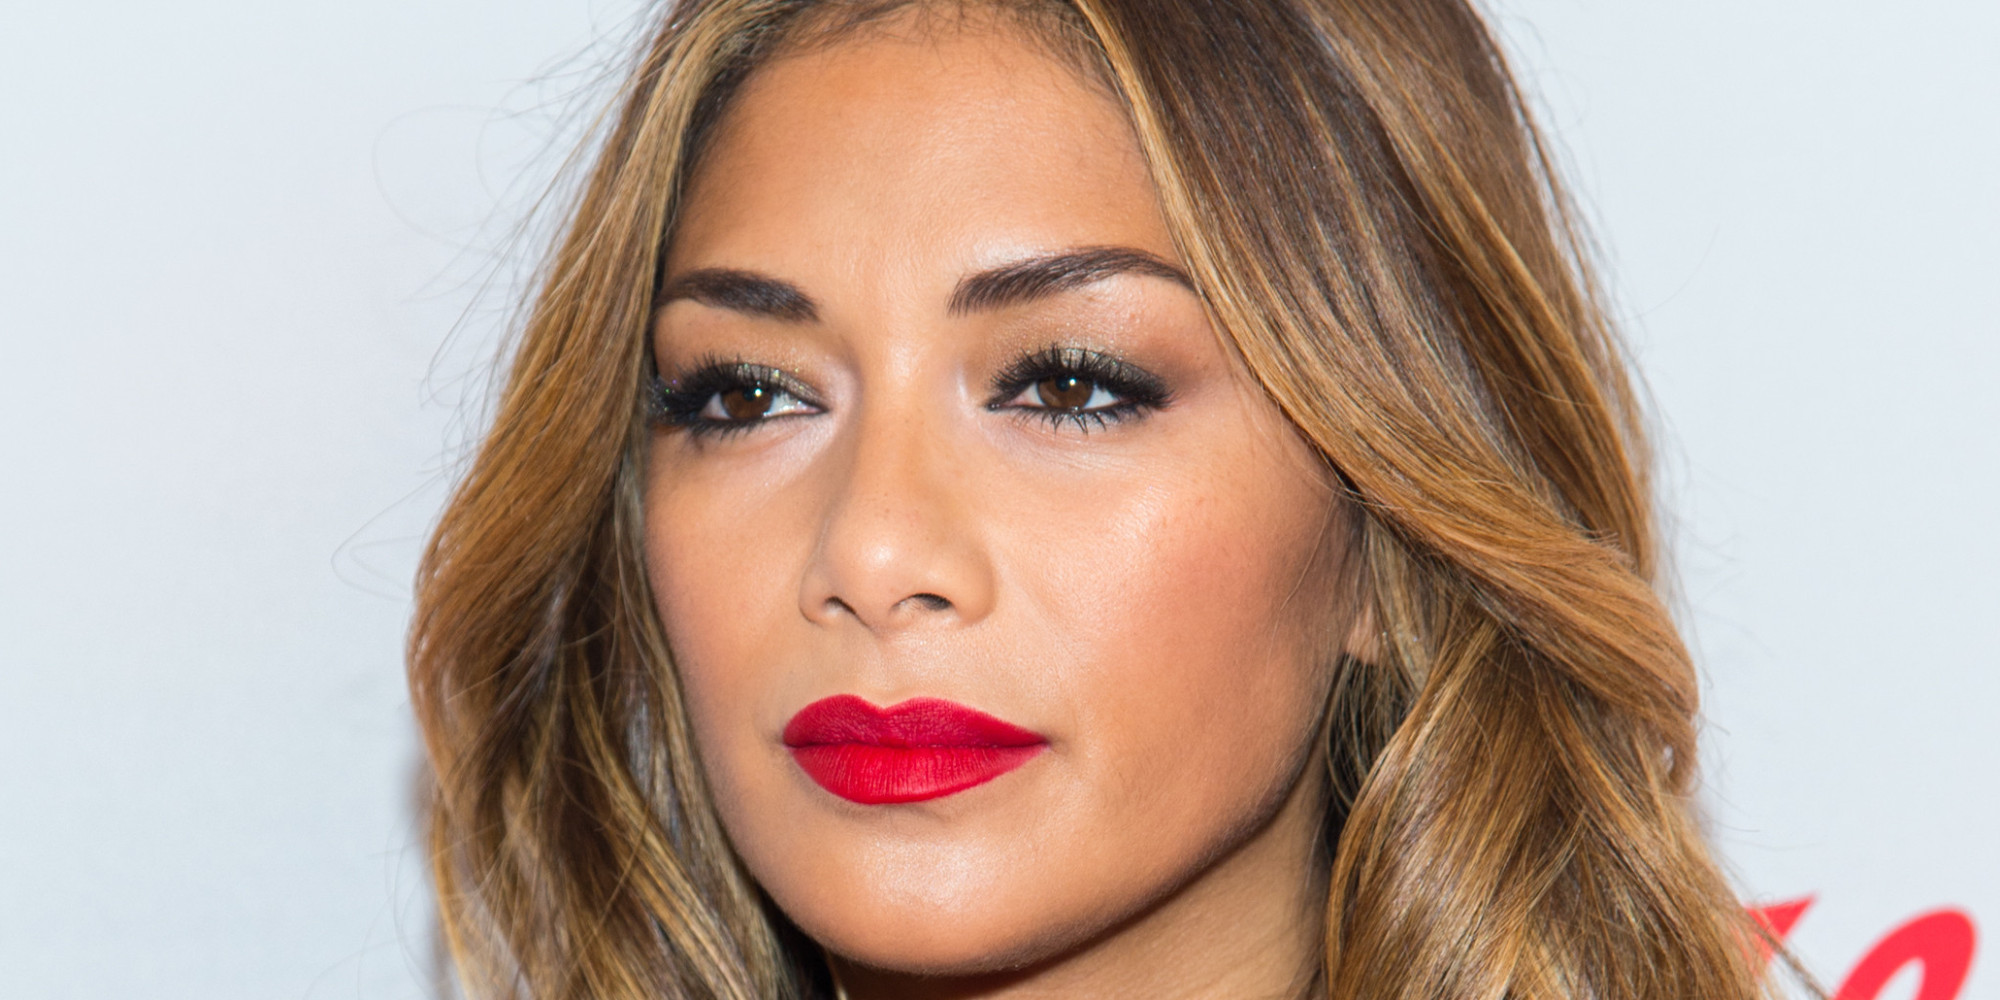 Nicole Scherzinger 'Dropped By Record Label' After Poor Sales | The ... Nicole Scherzinger